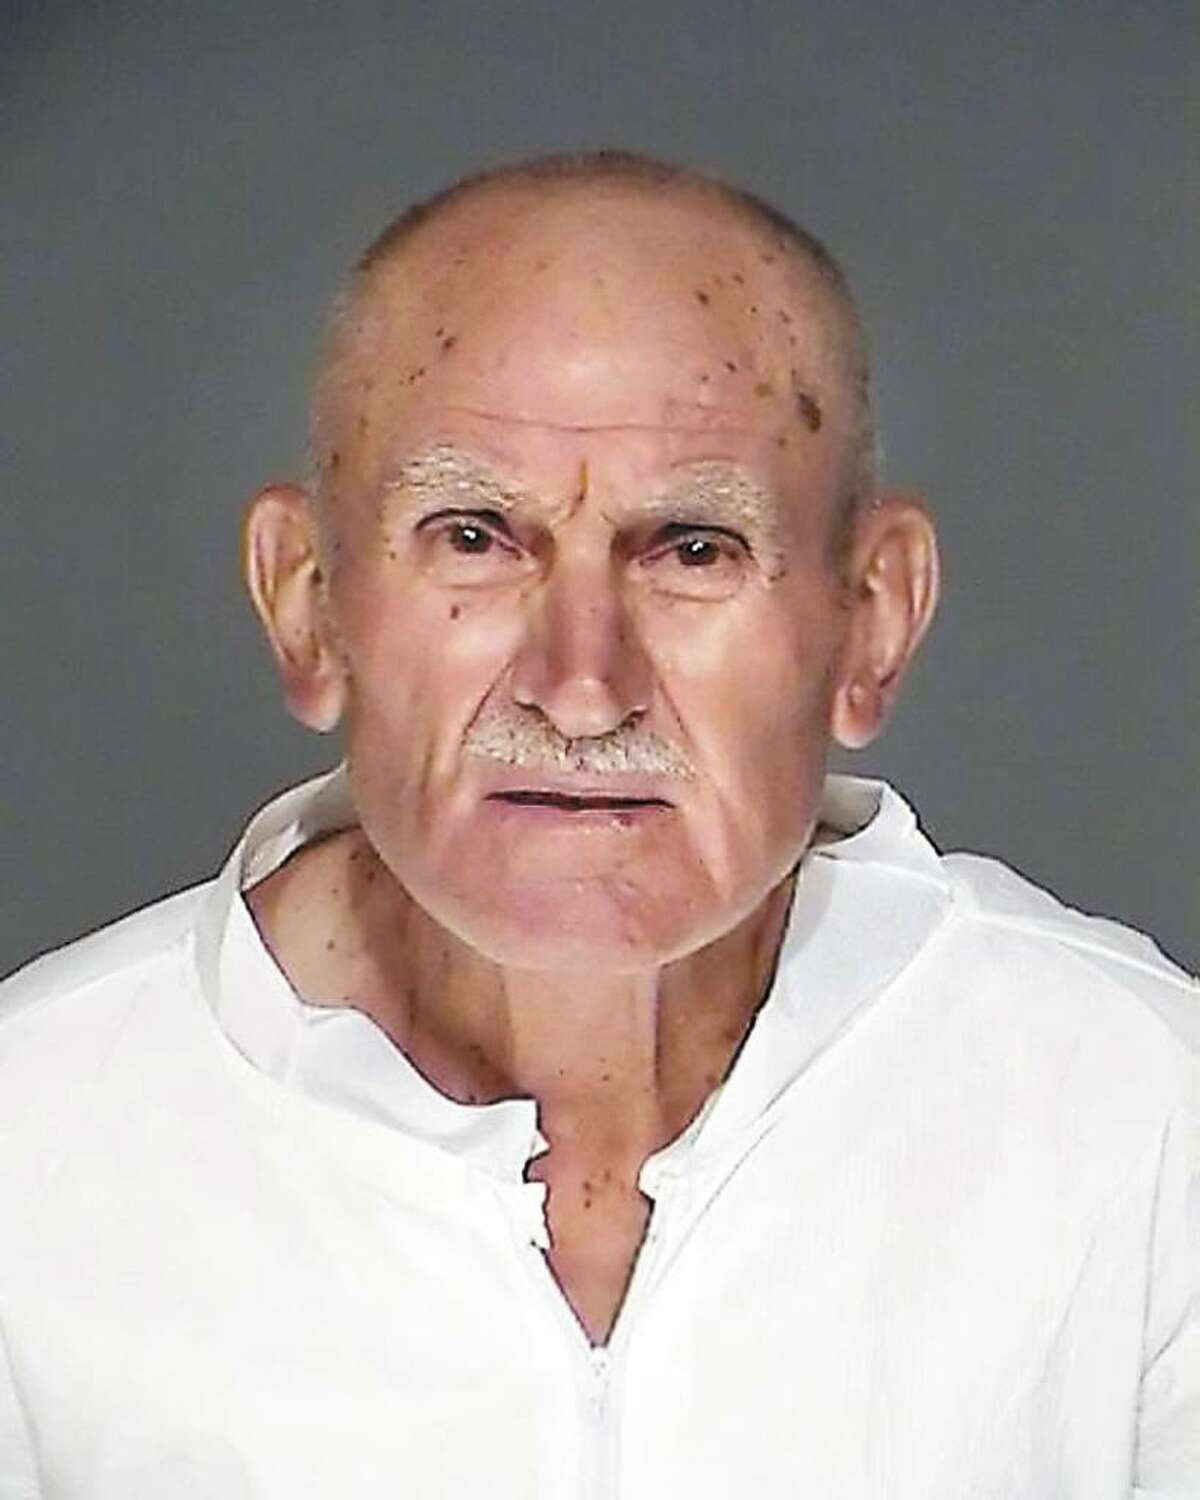 Gerardo Lombardi, 77, on trial for killing his ex-daughter-in-law, was convicted of first-degree manslaughter Friday in state Superior Court in Stamford. The photo is courtesy of the Greenwich Police Department and was taken in September 2008 after his arrest.